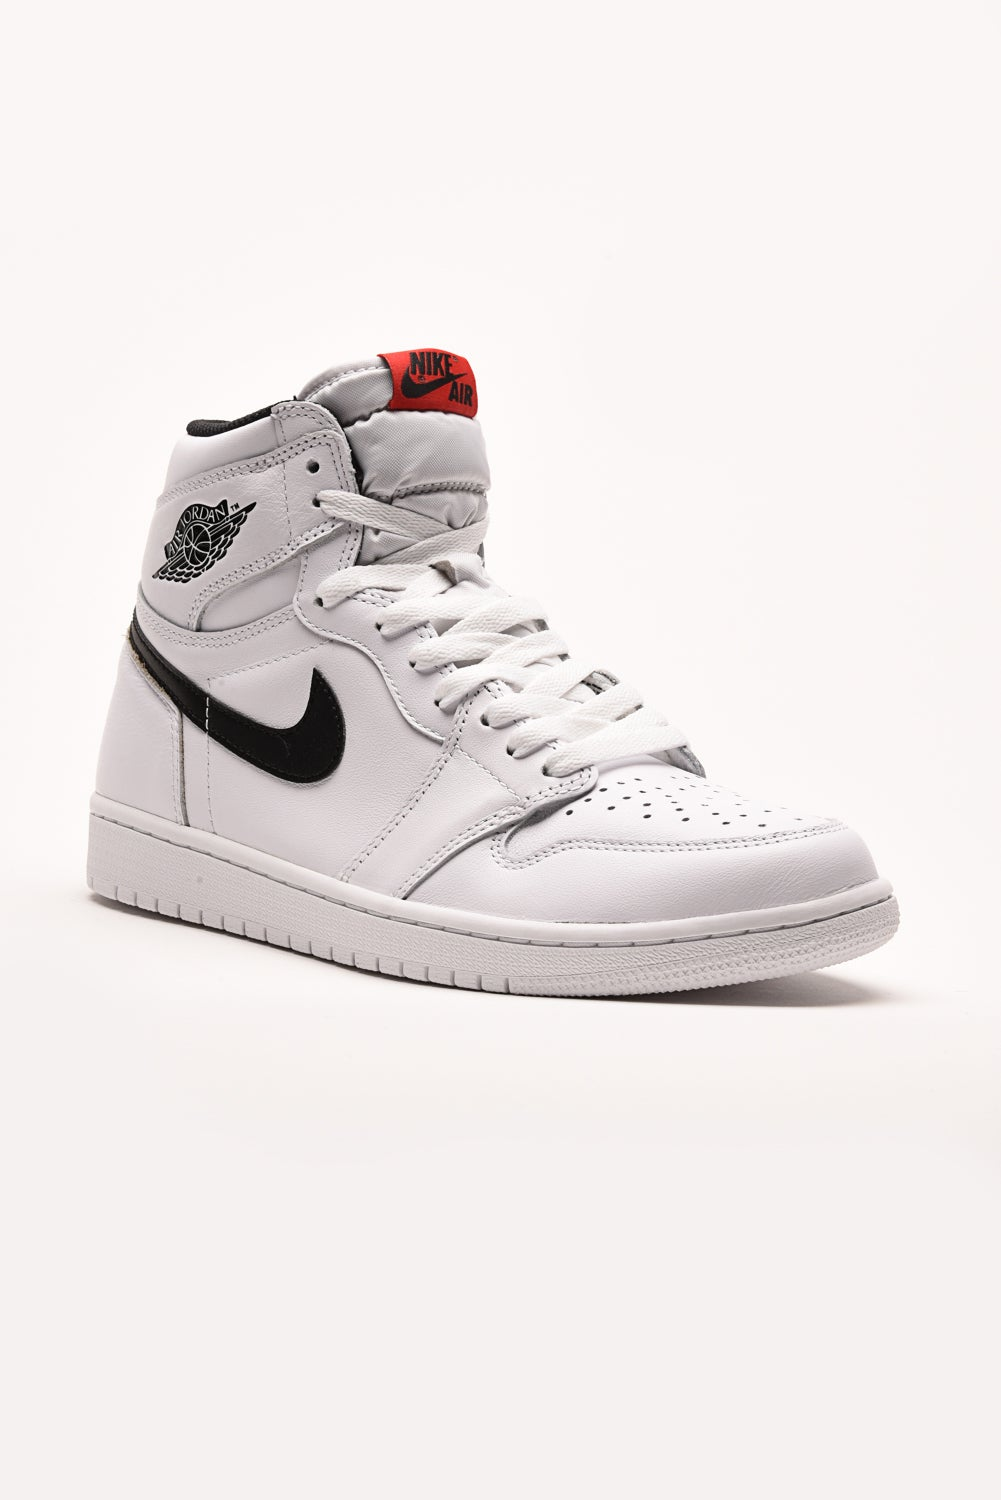 online store 1e328 197b1 Image of Air Jordan 1 Retro - Ying Yang White